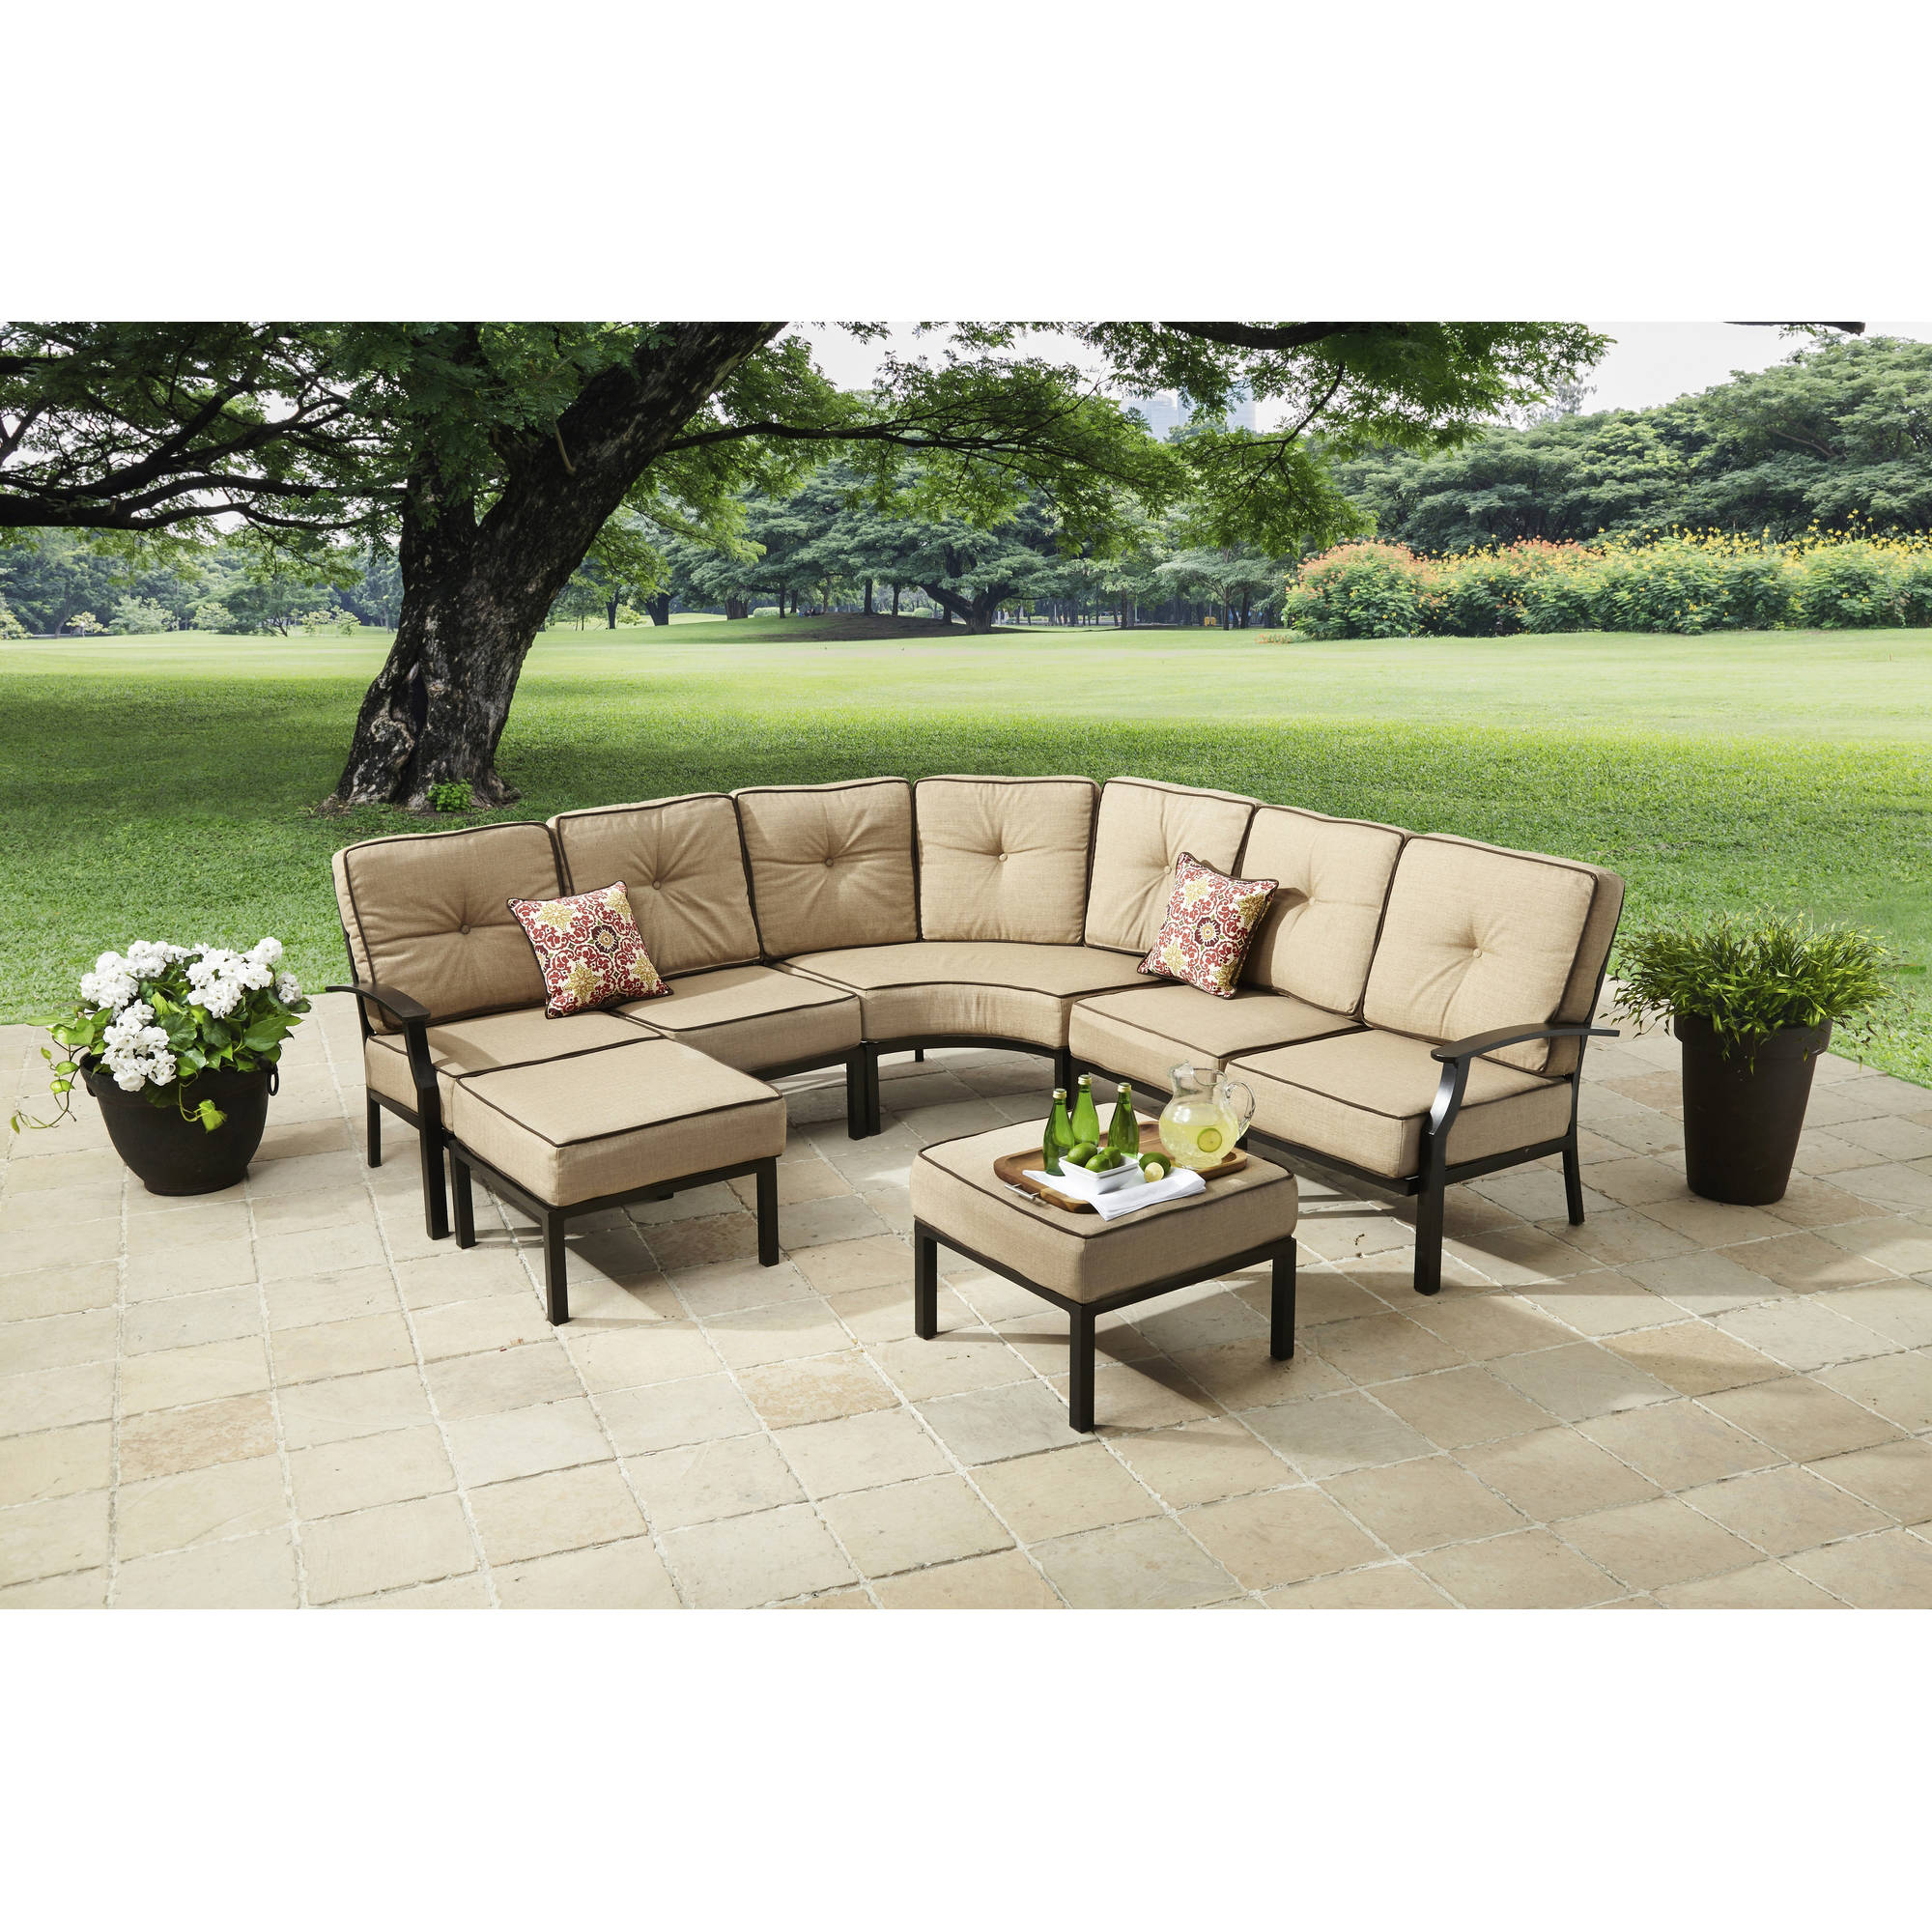 Better homes and gardens carter hills 7 piece outdoor for Outdoor garden set